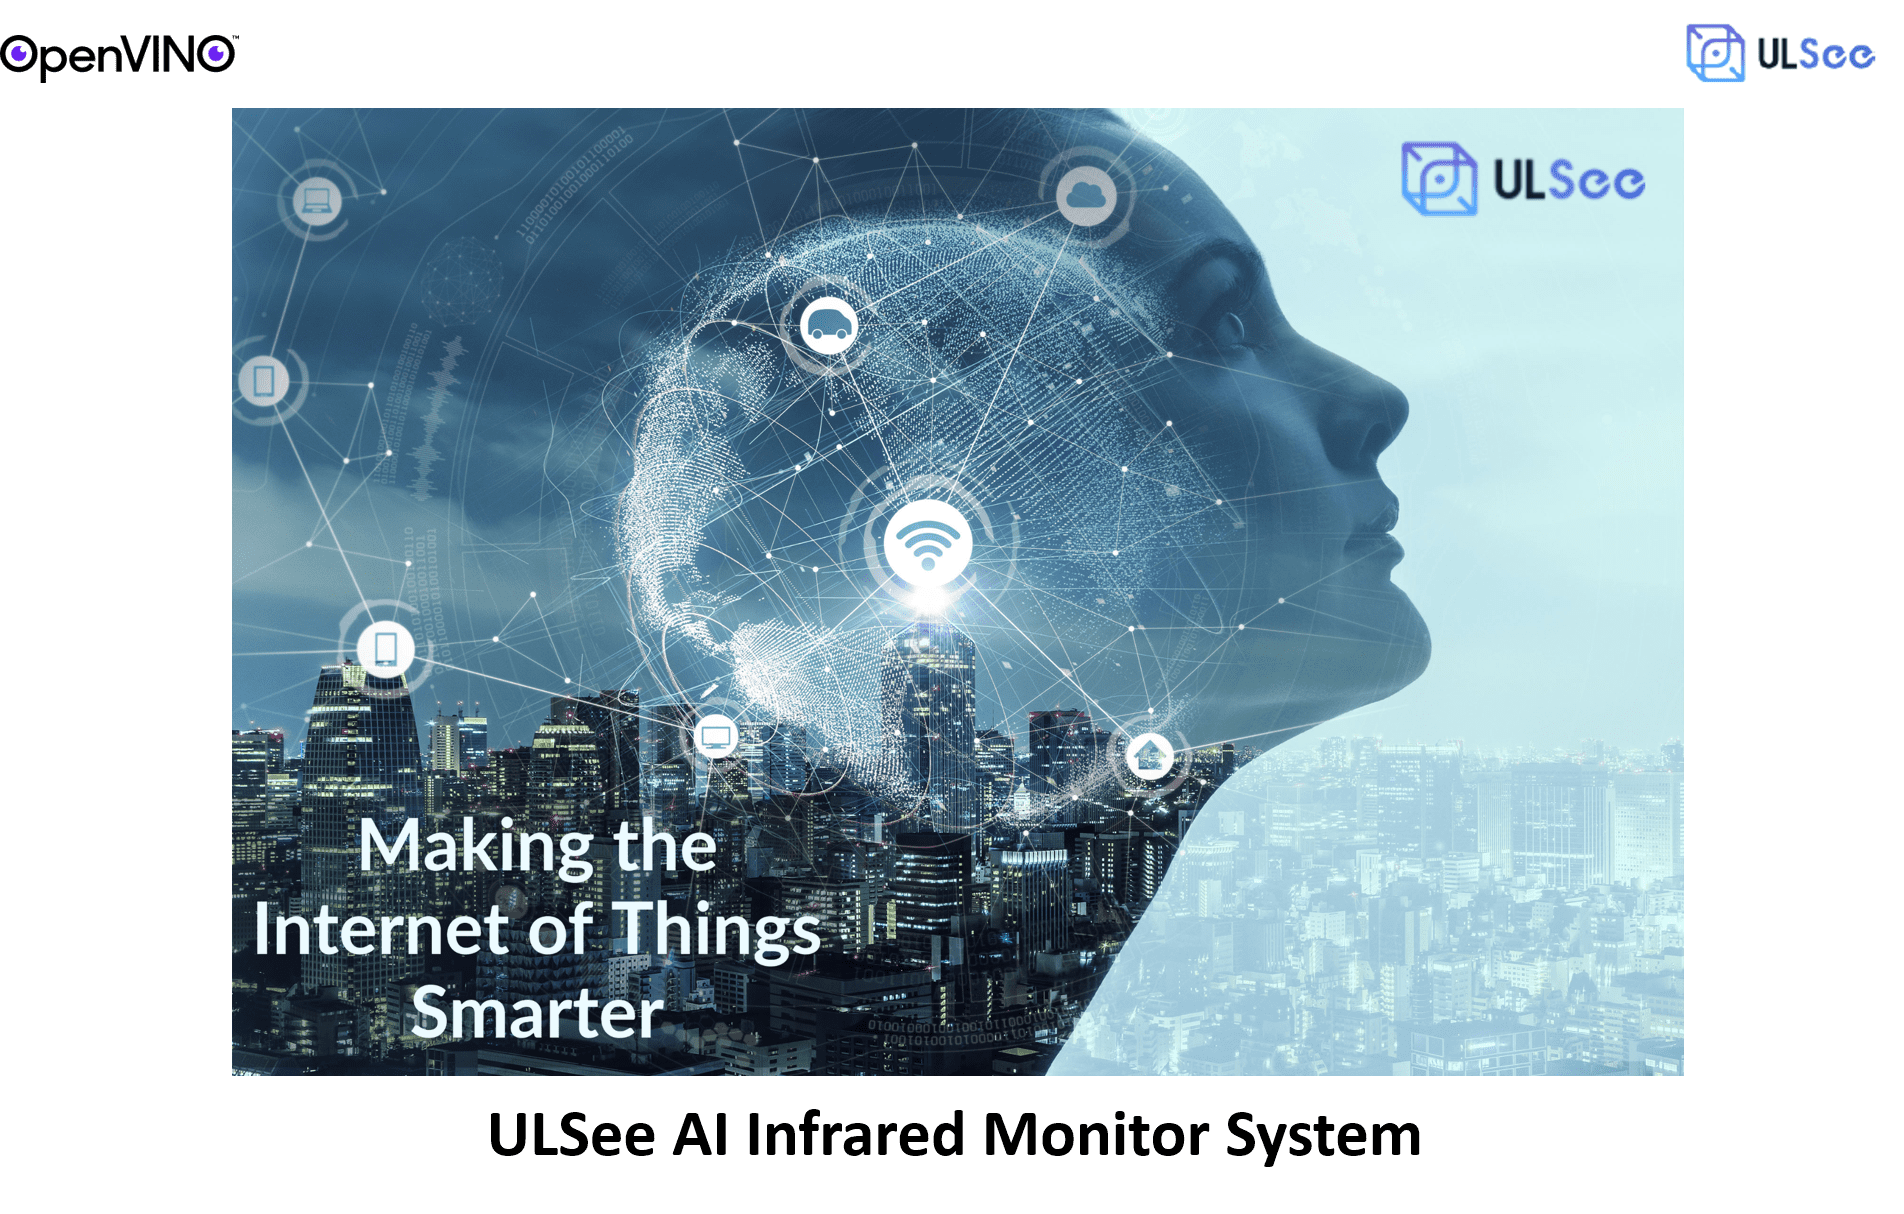 Ulsee AI Infrared Monitor System